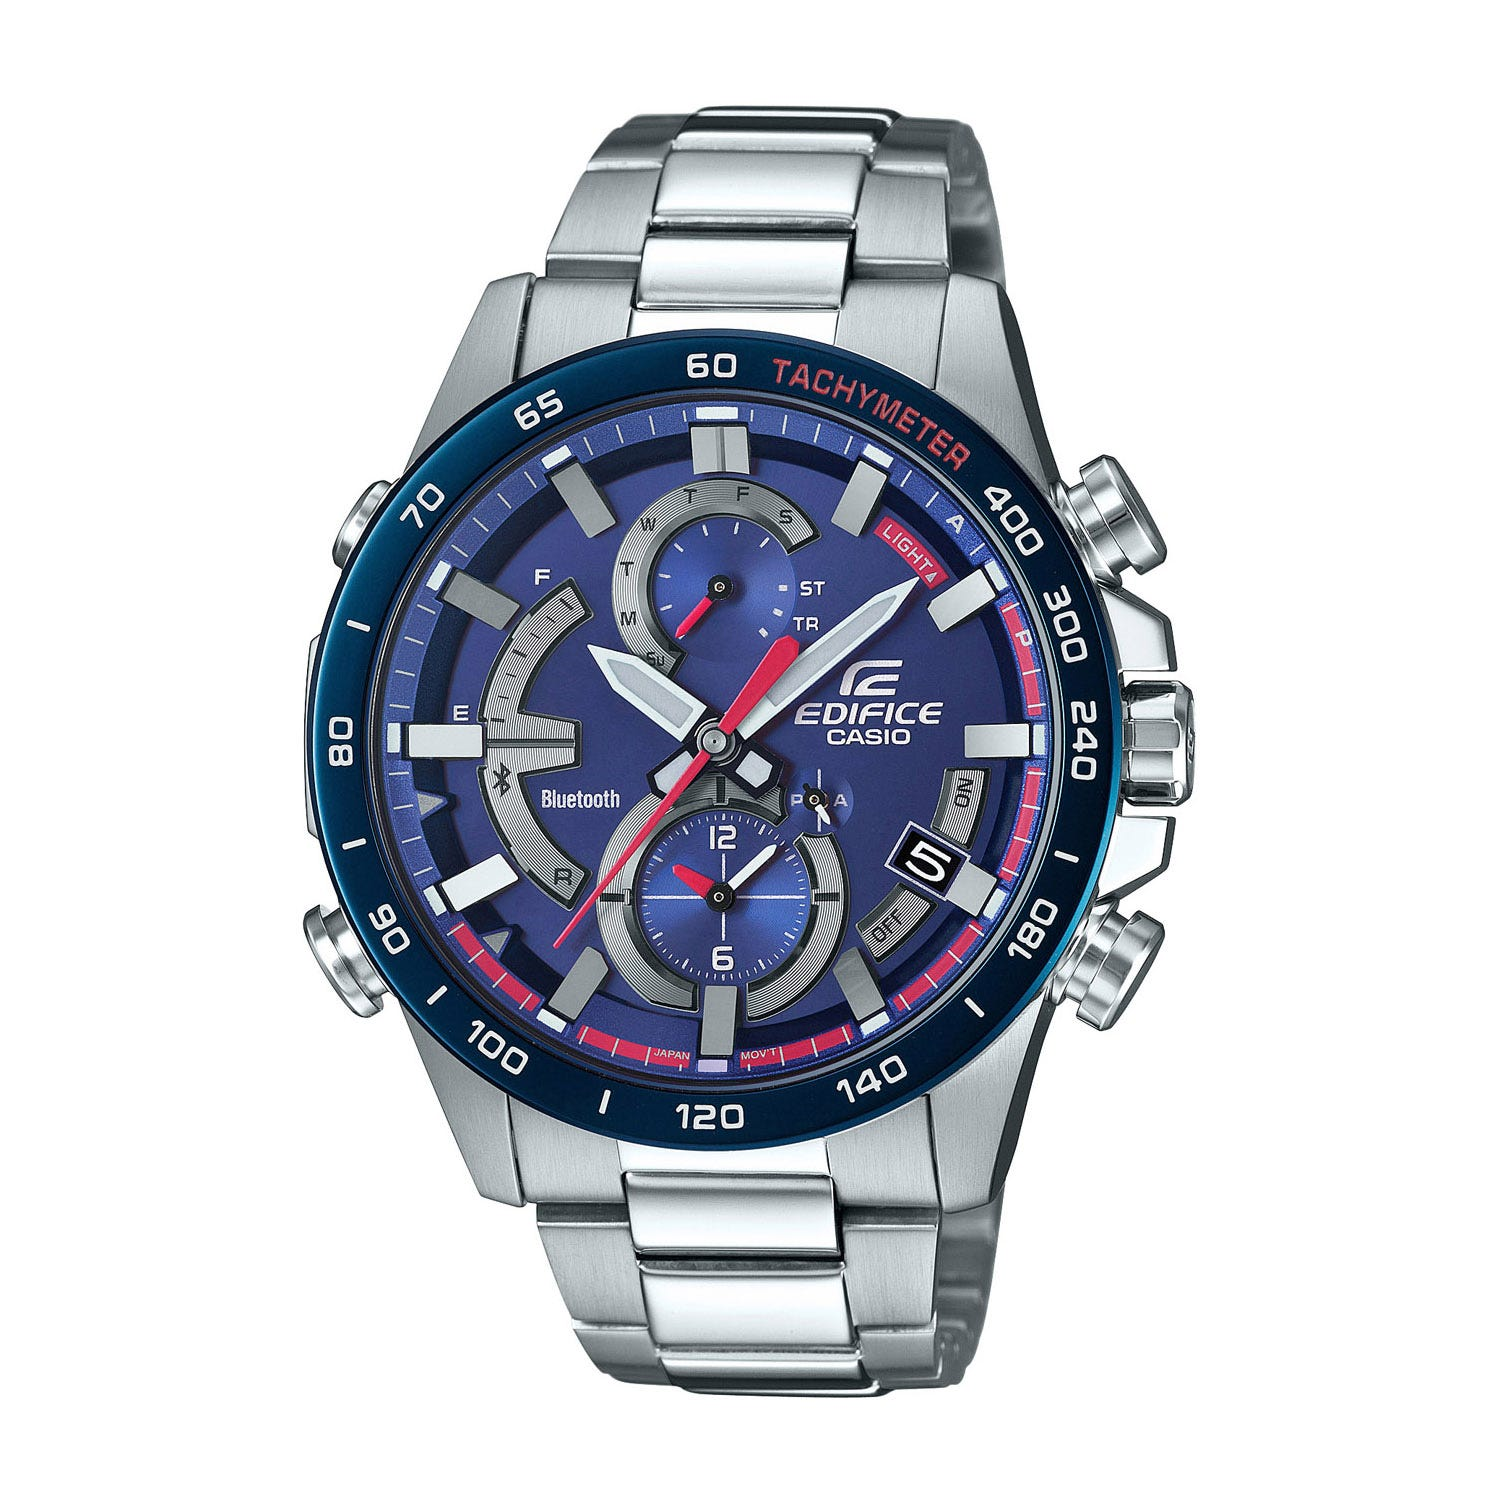 Casio Edifice Collection Watches